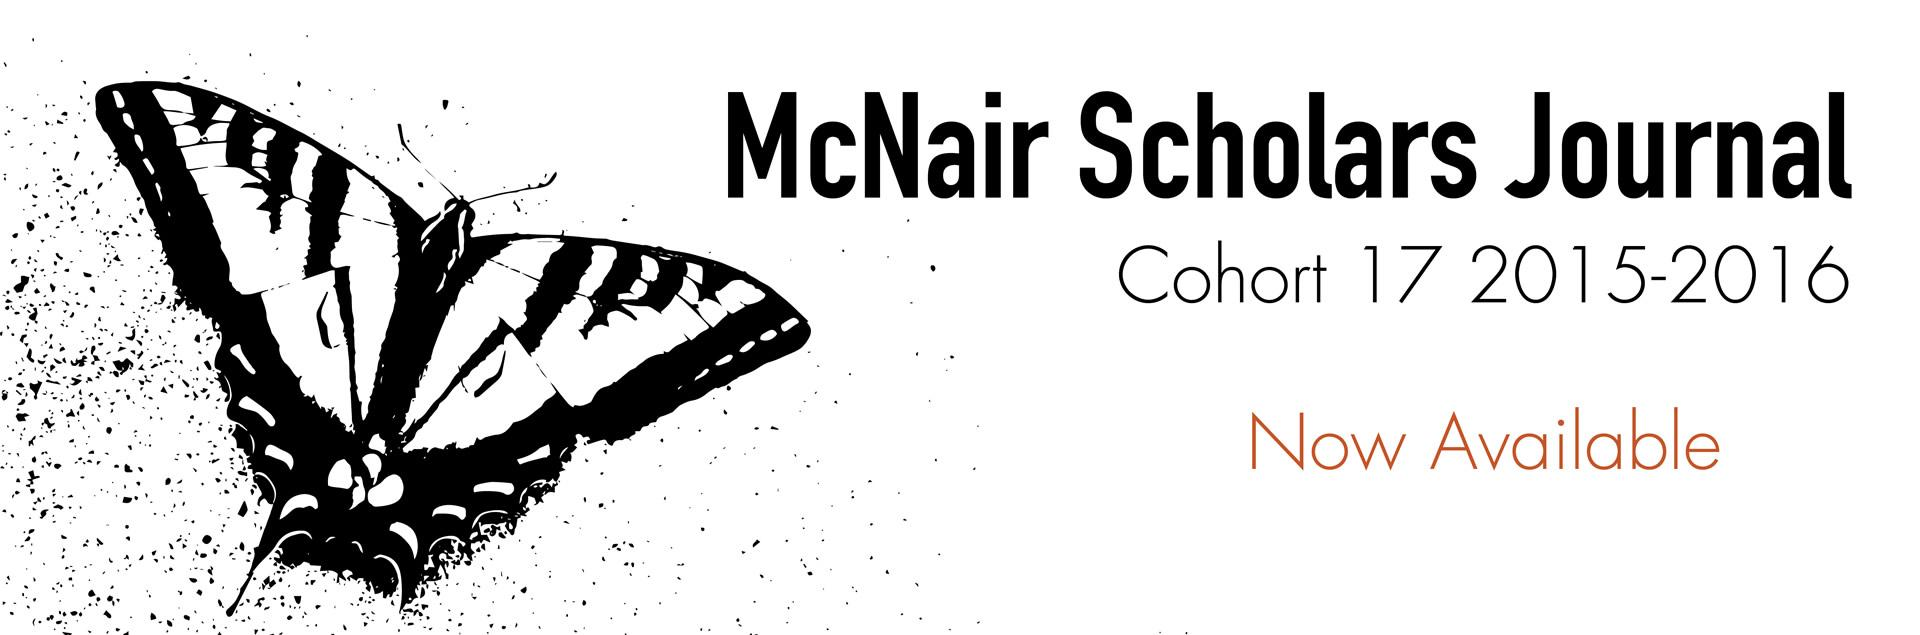 McNair Journal now available